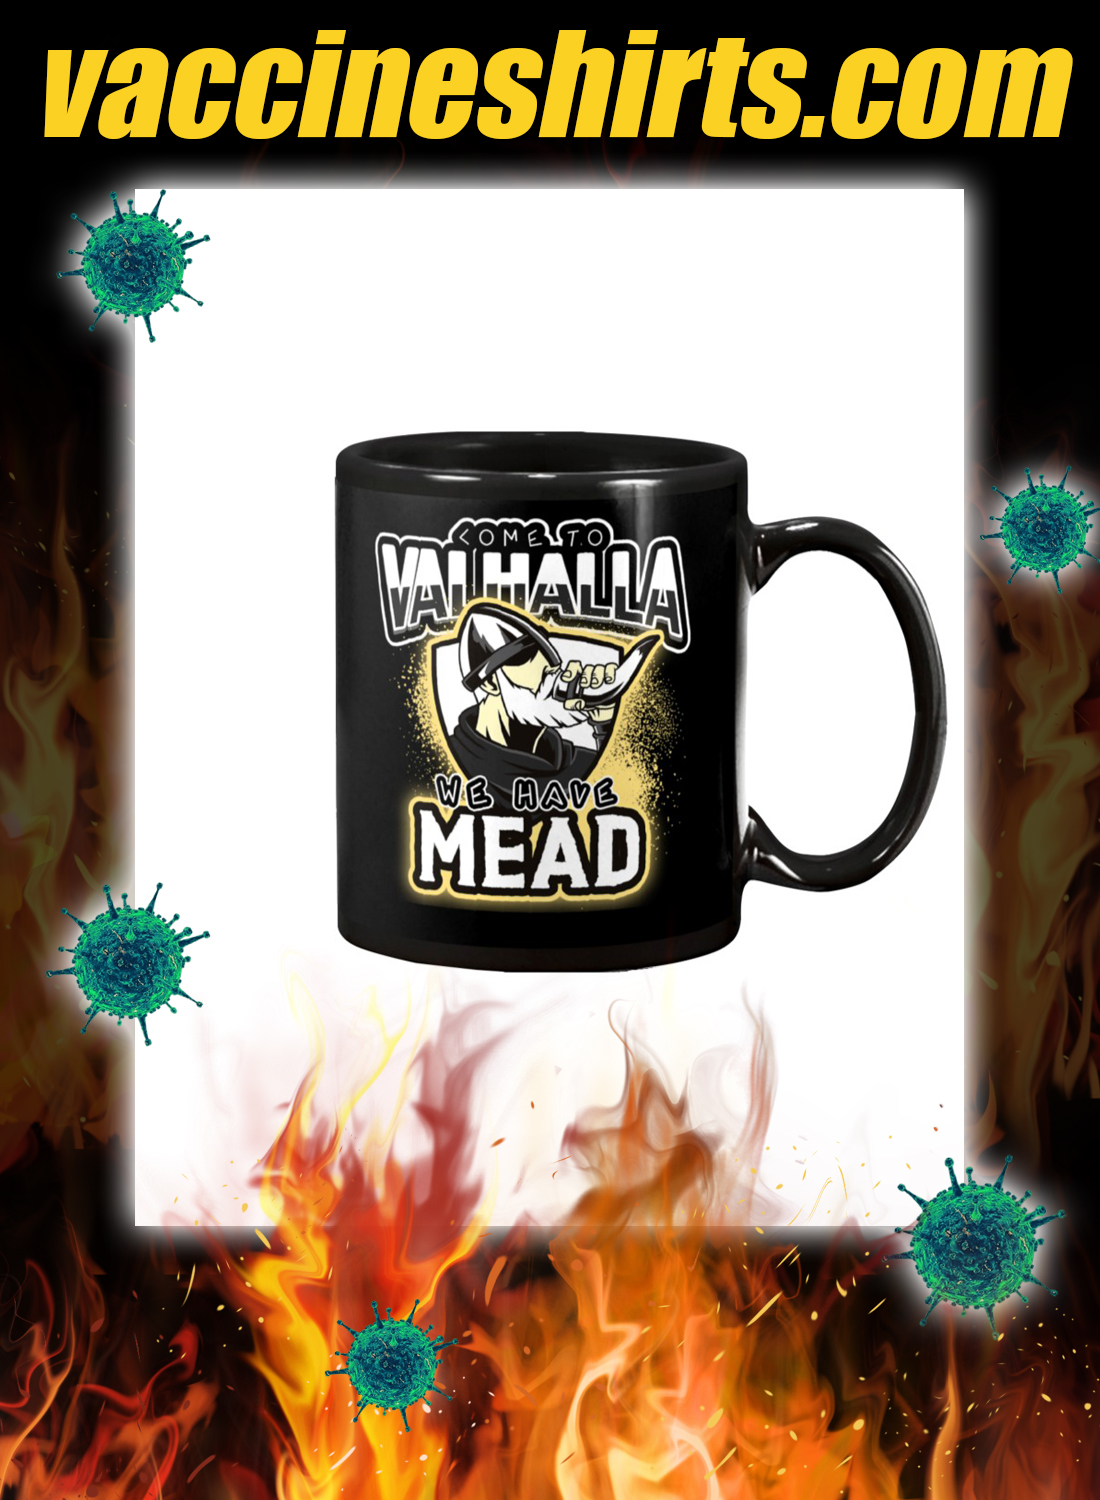 Come to valhalla we have mead mug - black